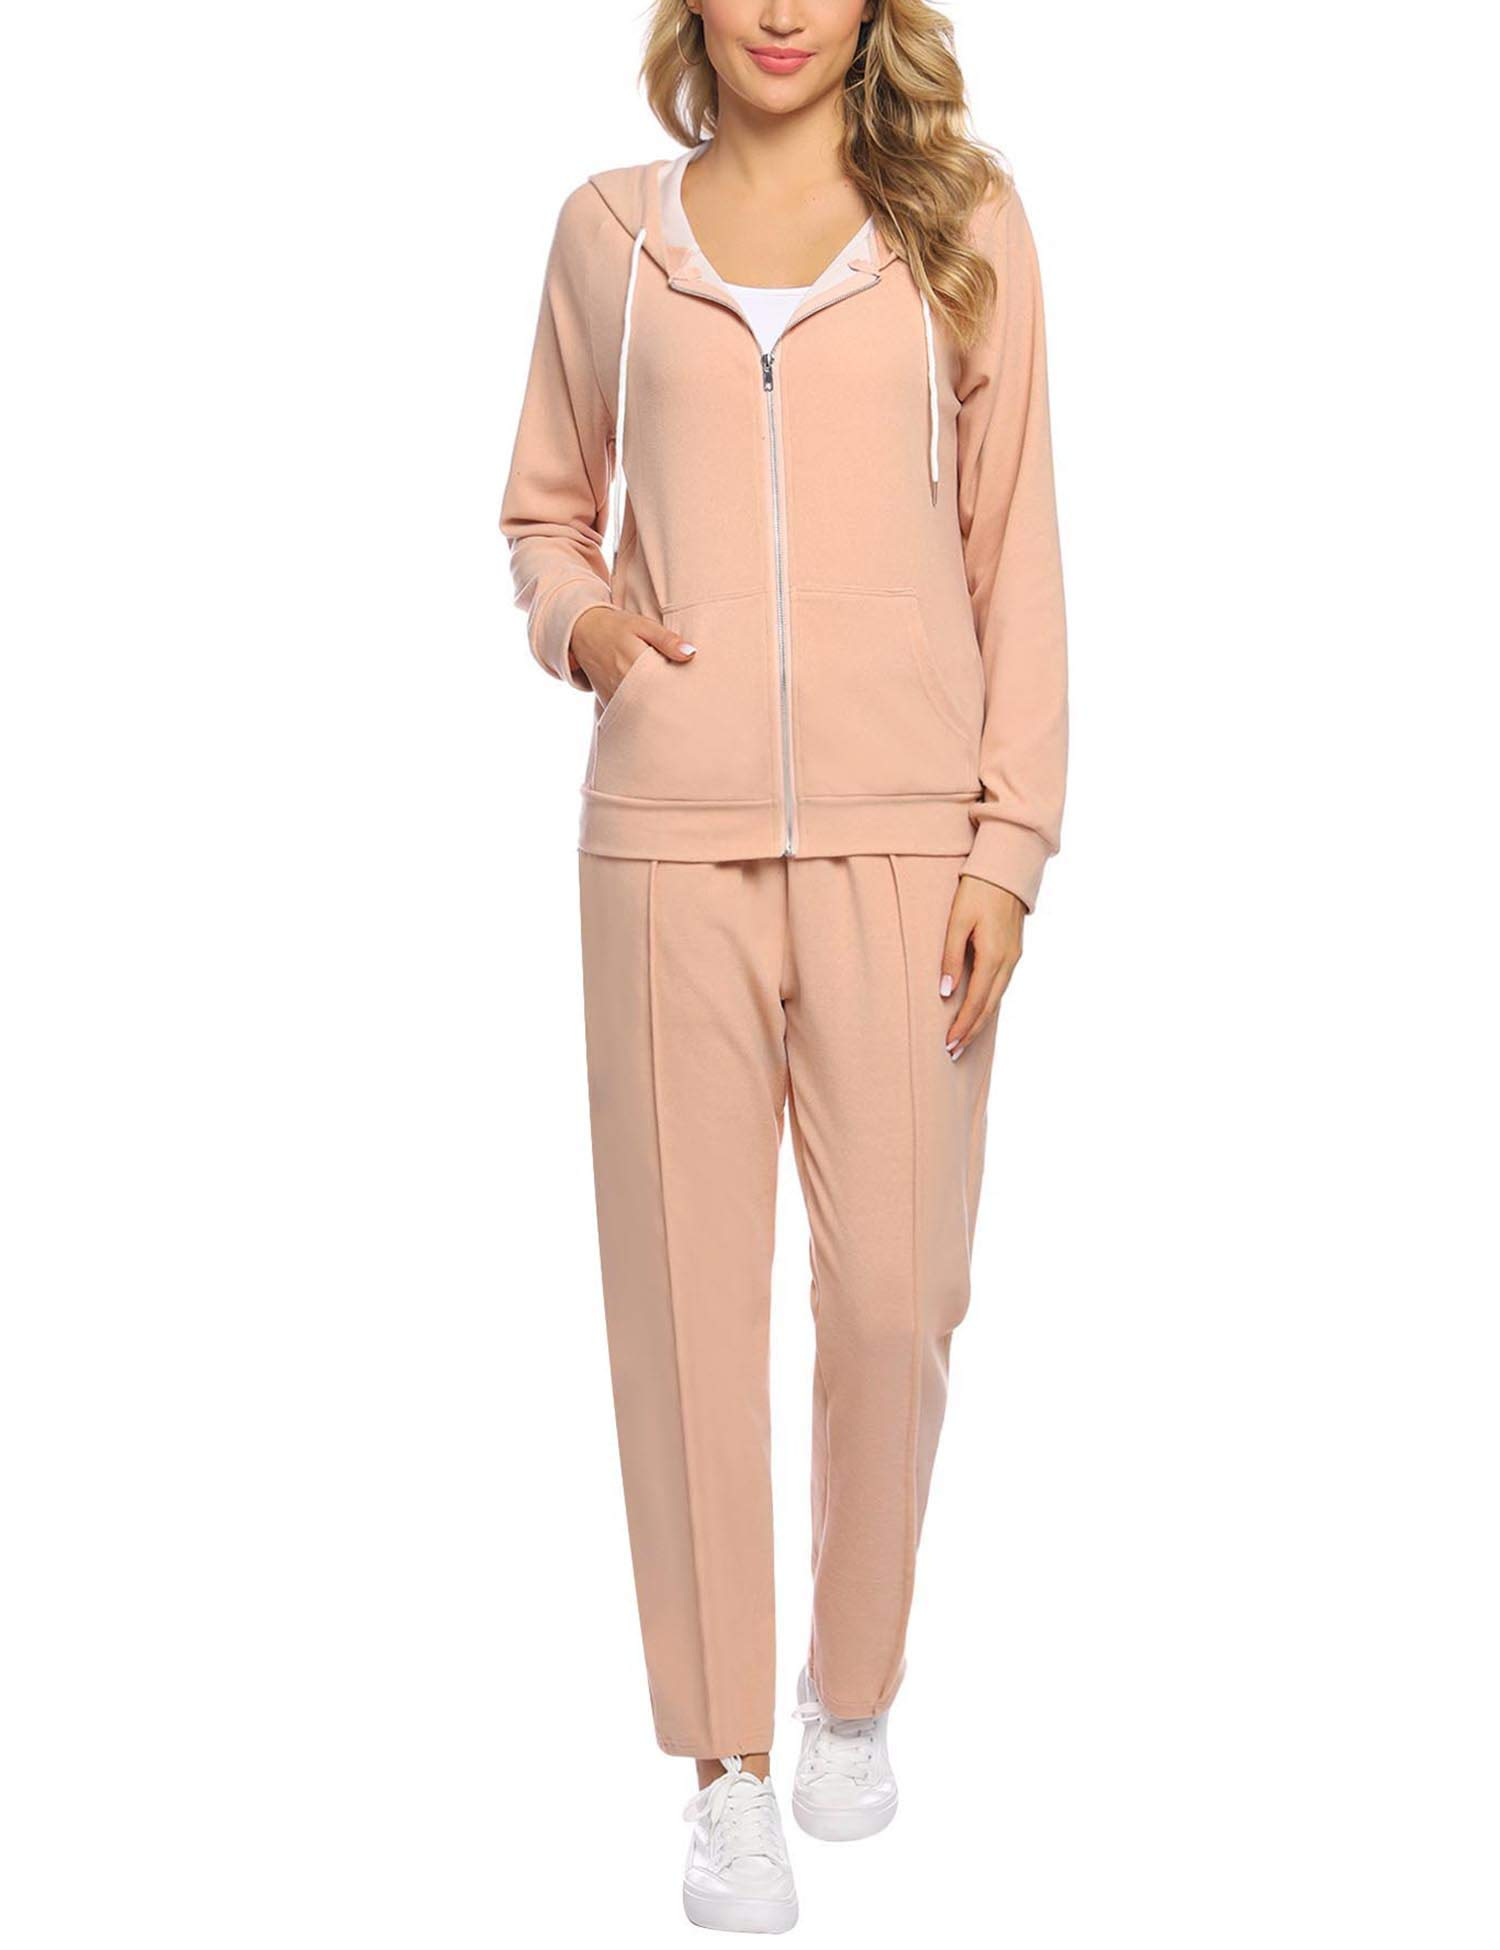 Abollria Women's Solid Velour Sweatsuit Set Hoodie and Pants Sport Suits Tracksuits Apricot by Abollria